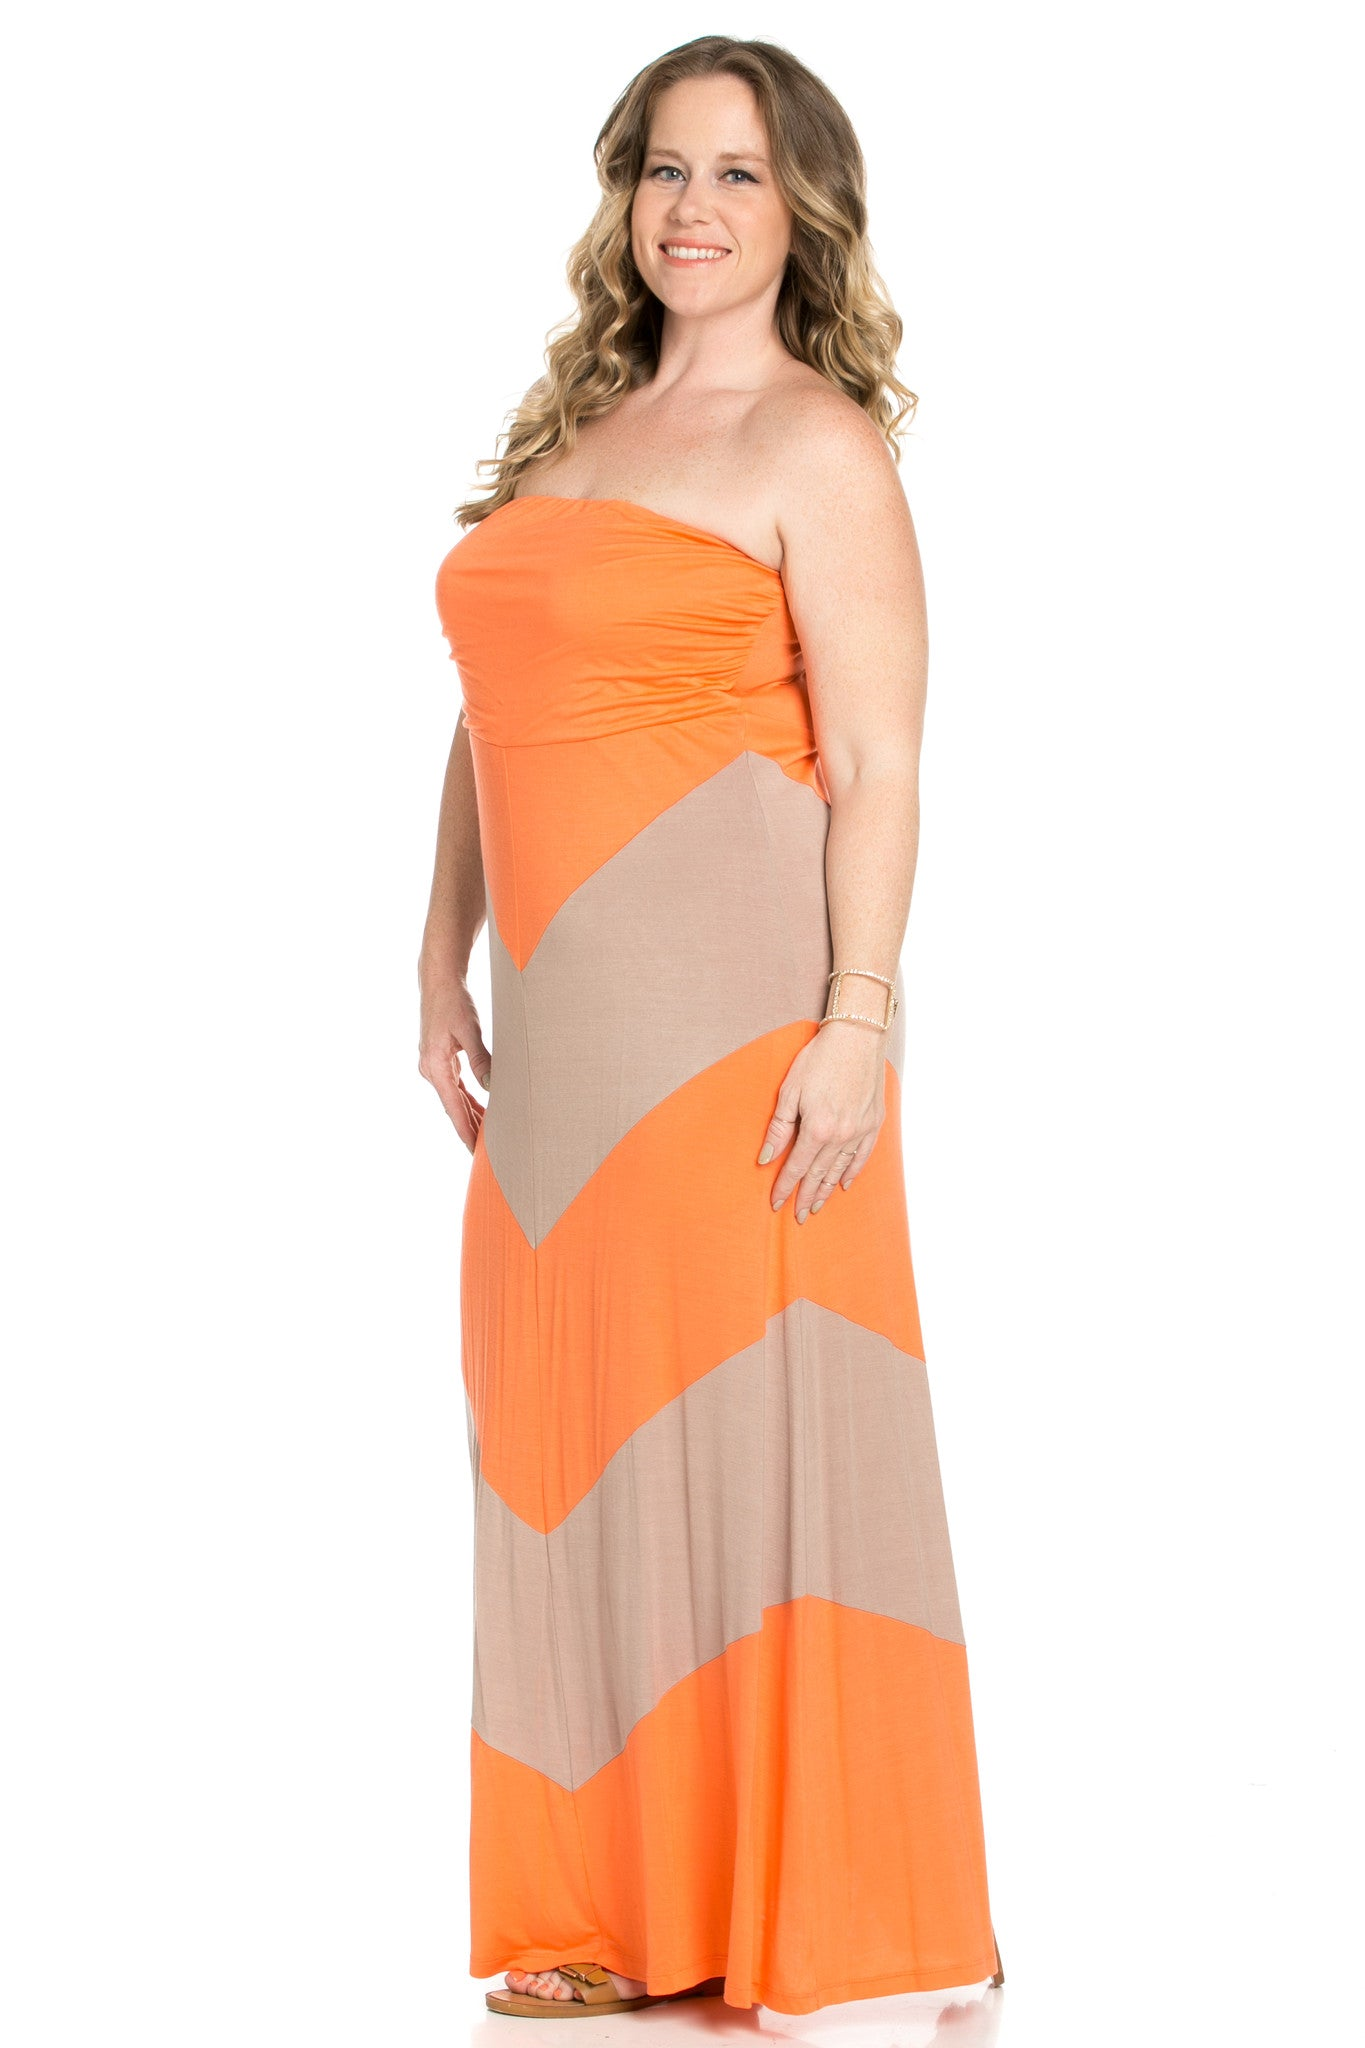 Strapless Long tube Dress Peach/Mocha Cause You're Chevron - Dresses - My Yuccie - 3